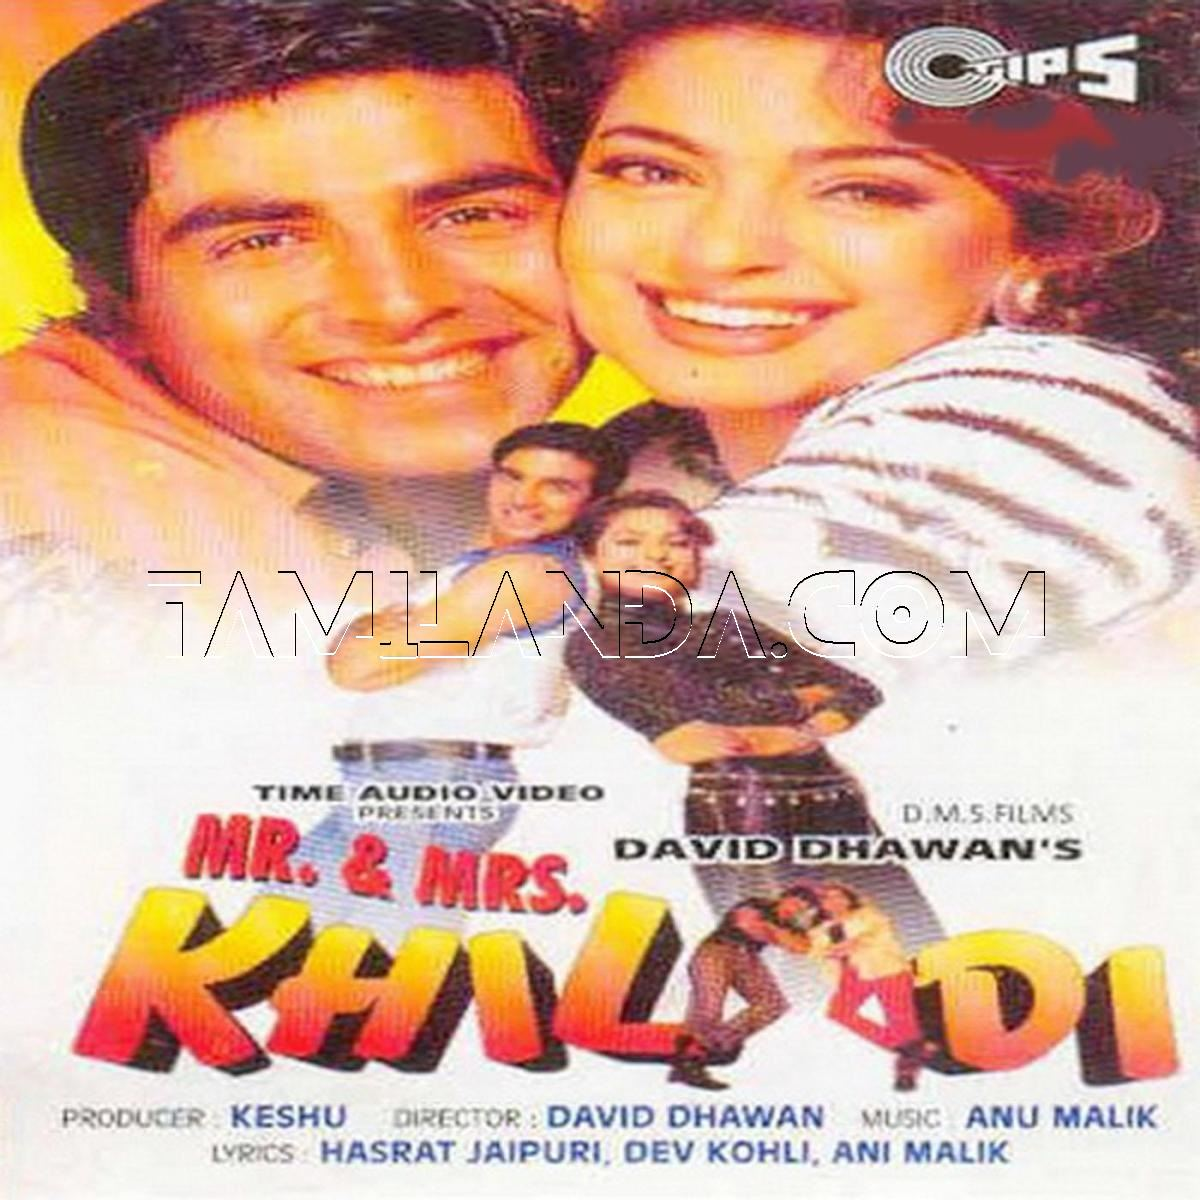 Mr. & Mrs. Khiladi (1997) FLAC Songs